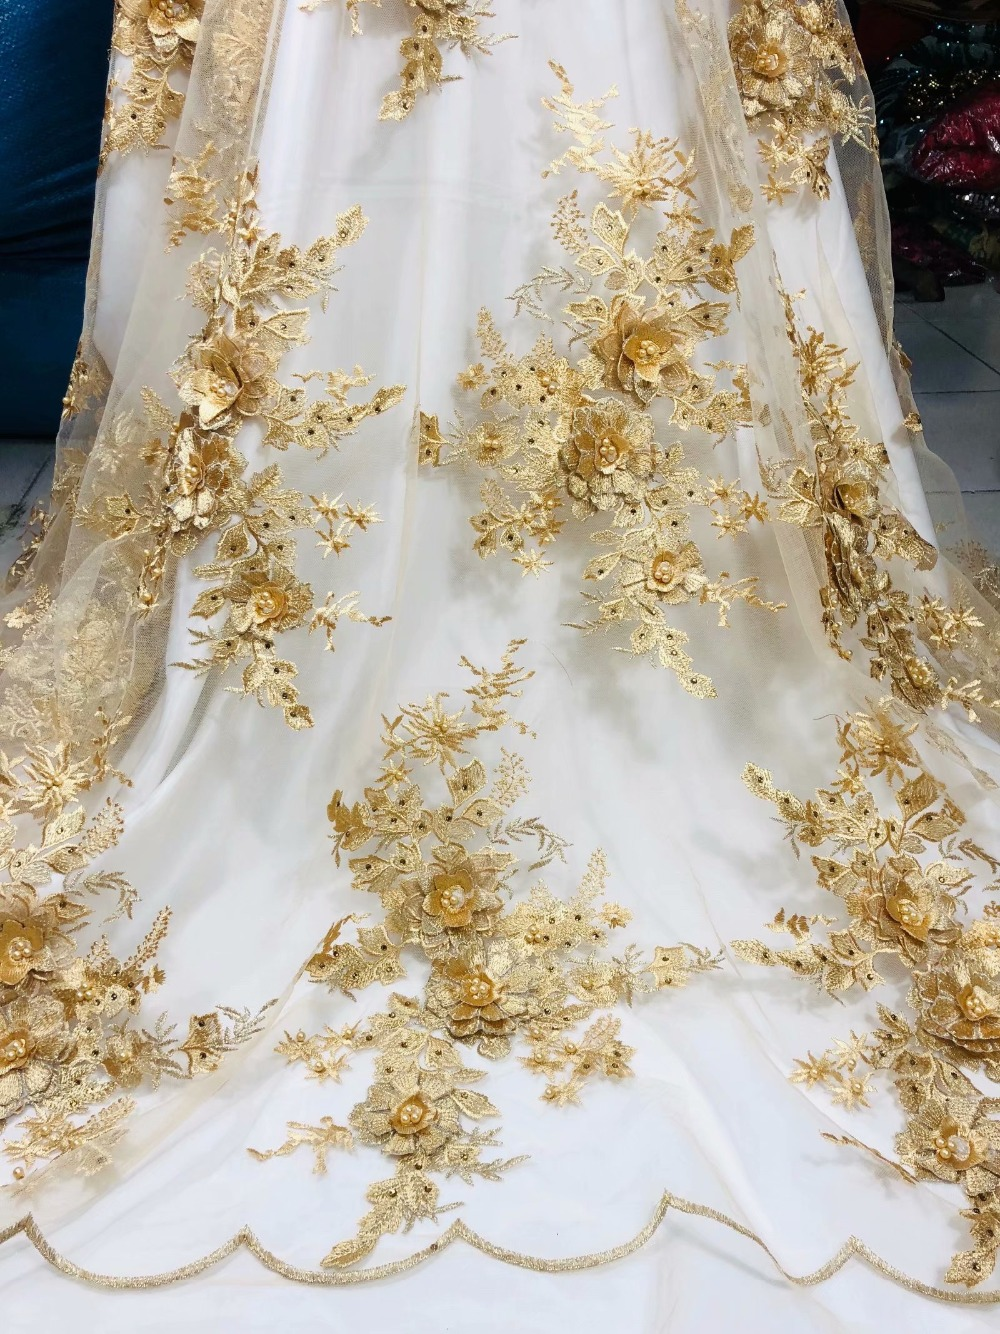 Cheap Latest African Laces 2019 Embroidery 3D Flower Fabric High Quality African Dresses For Women Nigerian